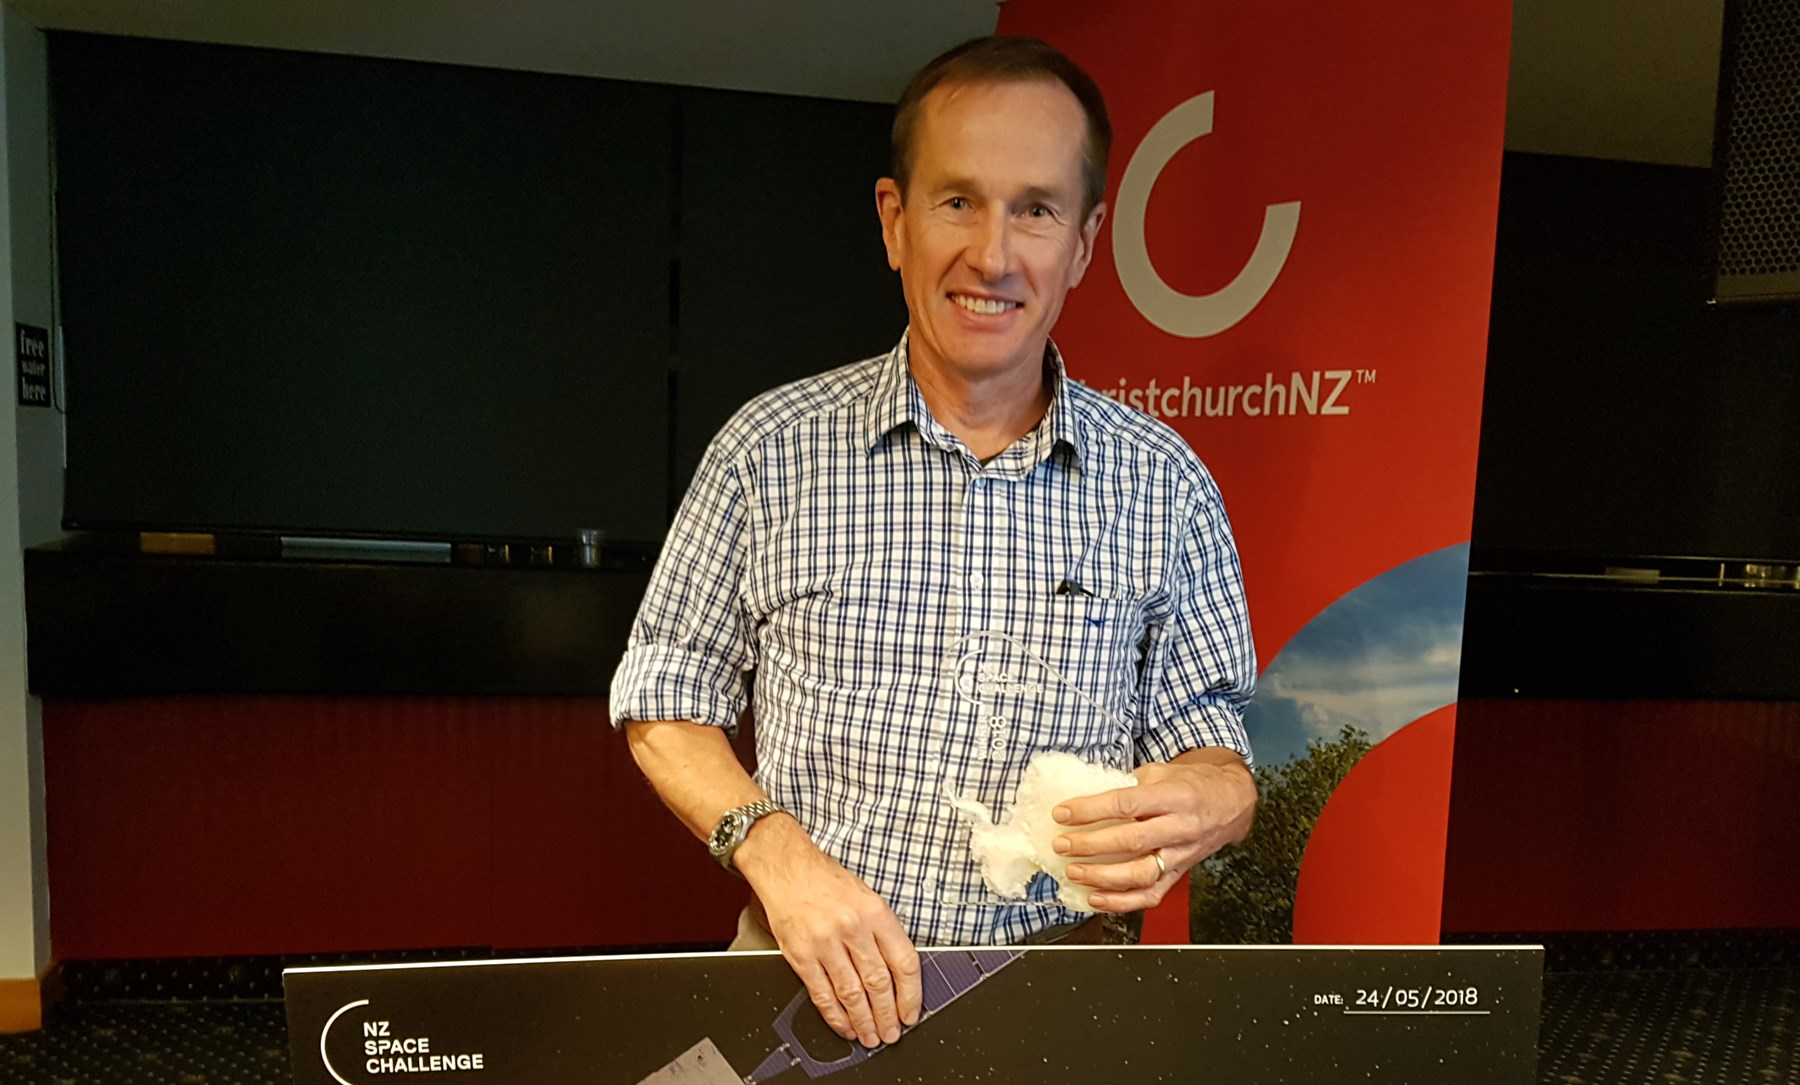 John Ahearn winning the NZ Space Challenge 2018